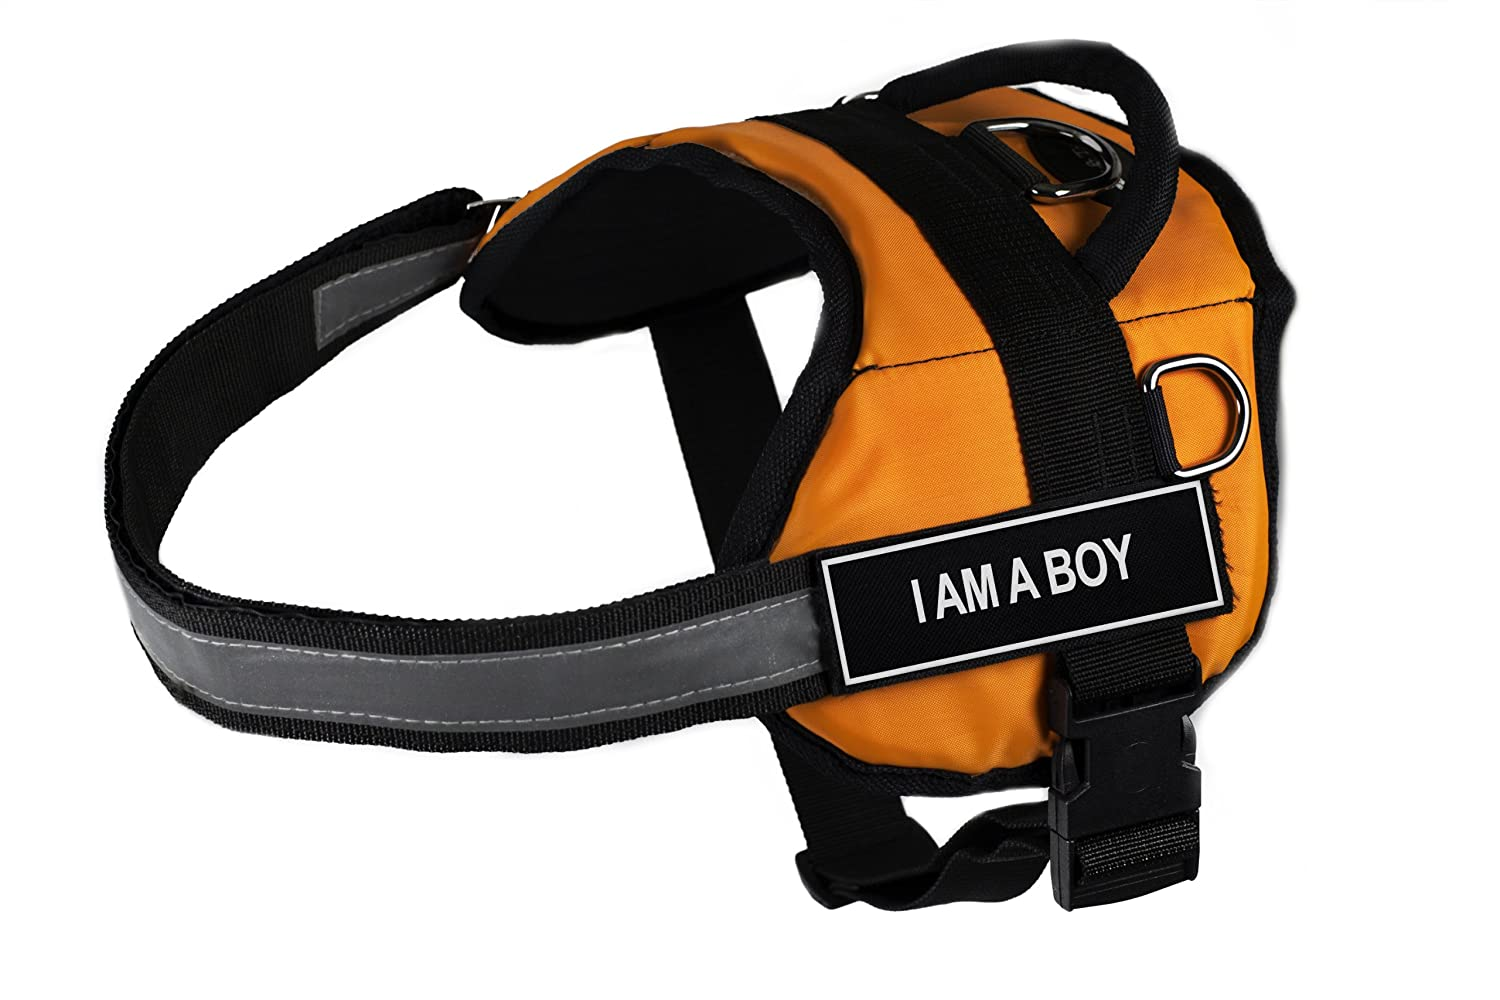 Dean & Tyler DT Works Fun Harness I Am A Boy Pet Harness, Large, Fits Girth Size 34-Inch to 47-Inch, orange Black